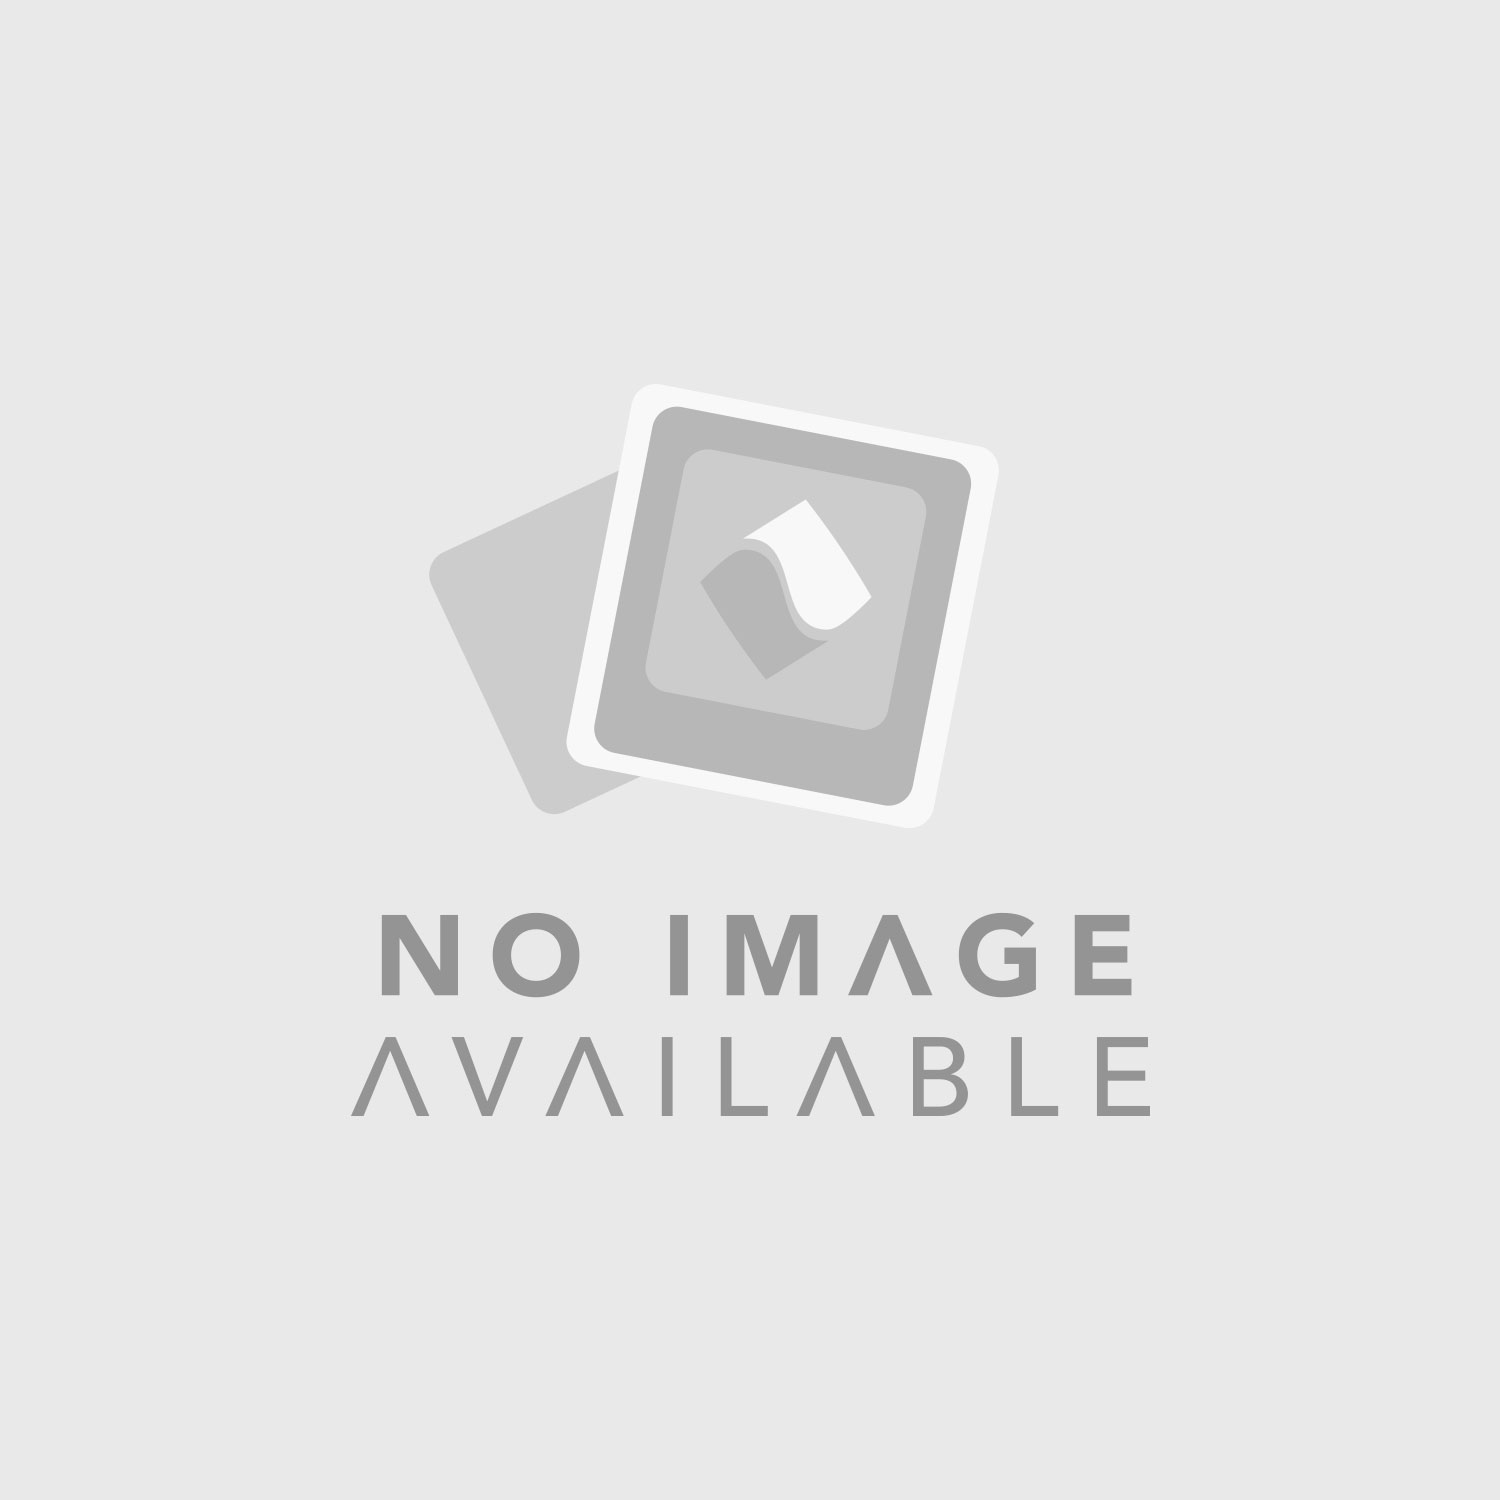 Yamaha HS5W Powered Studio Monitors and HS8S Subwoofer with Isolation Pads and Cables Kit (White)